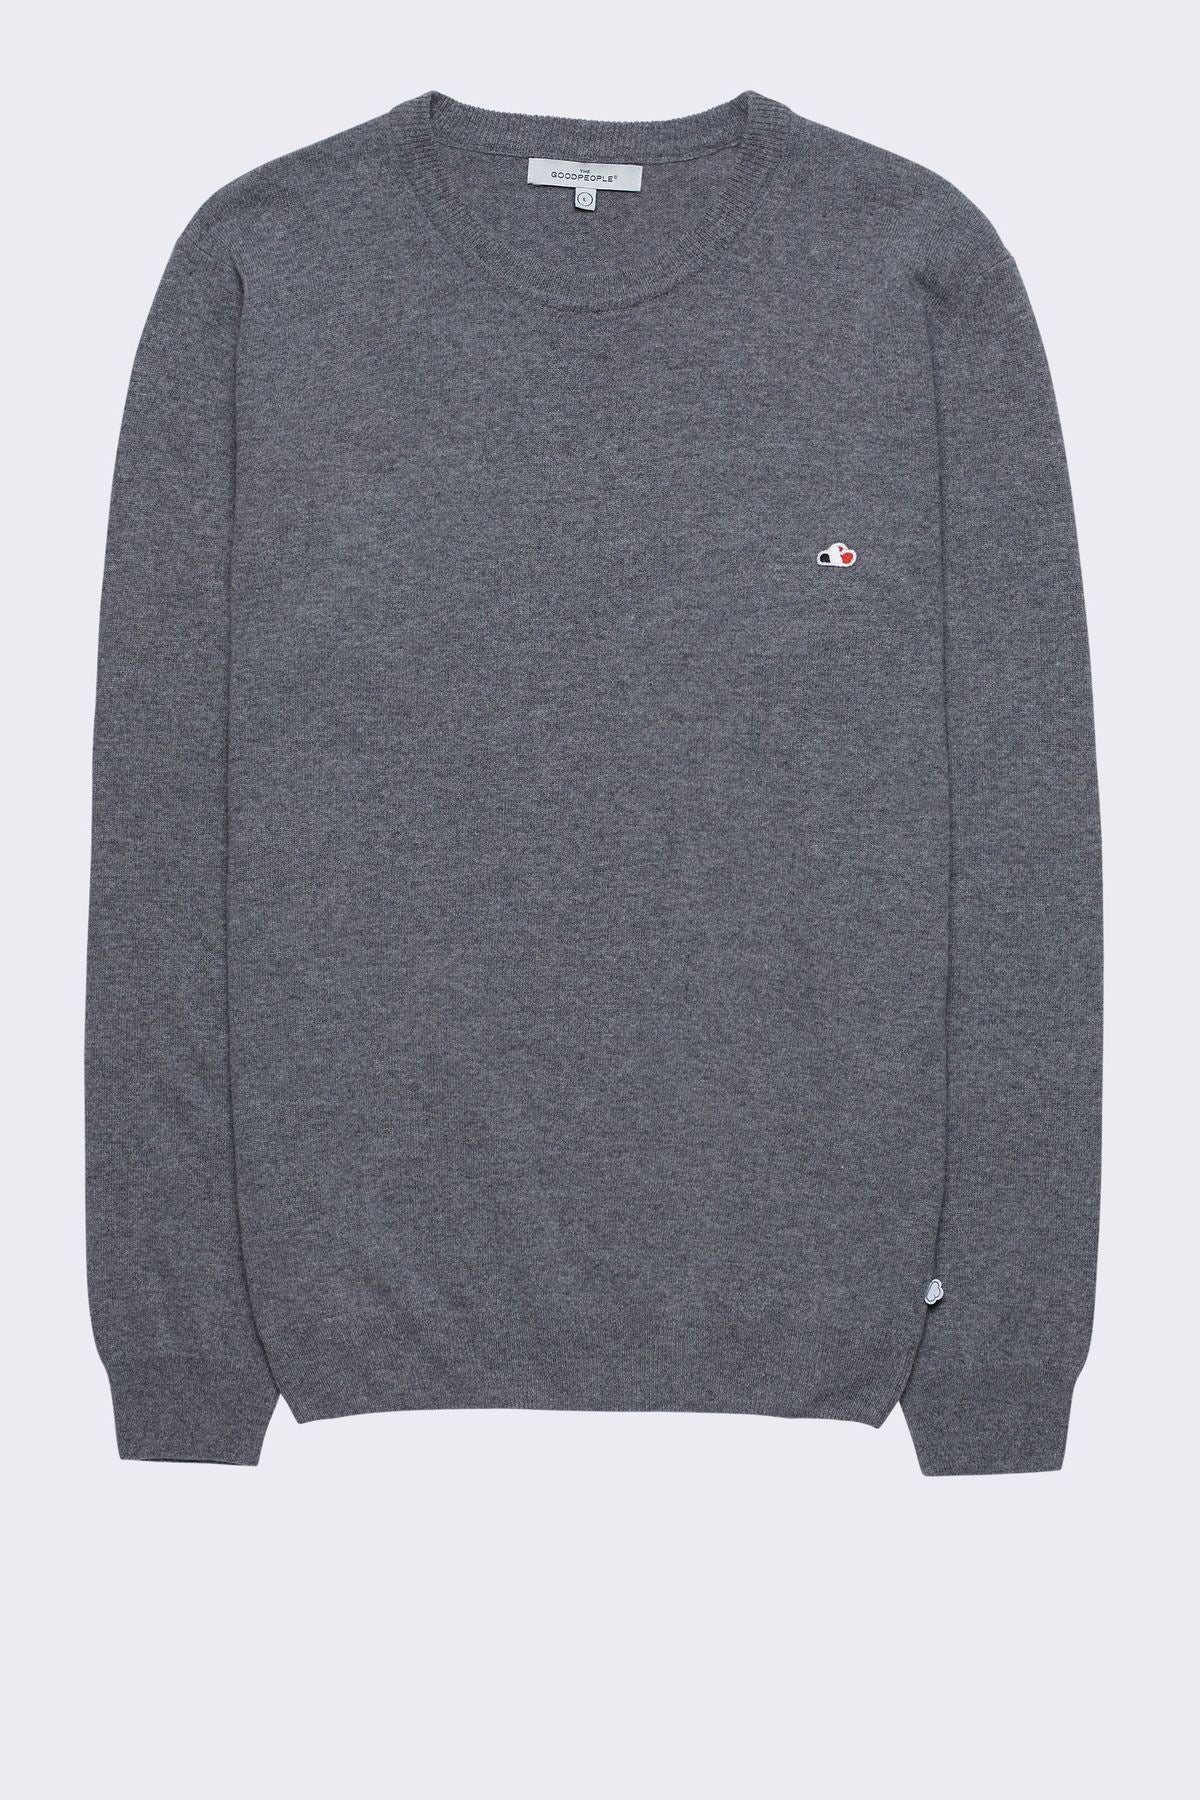 The Good People -  SWEATER KNOX - MID GREY MELANGE